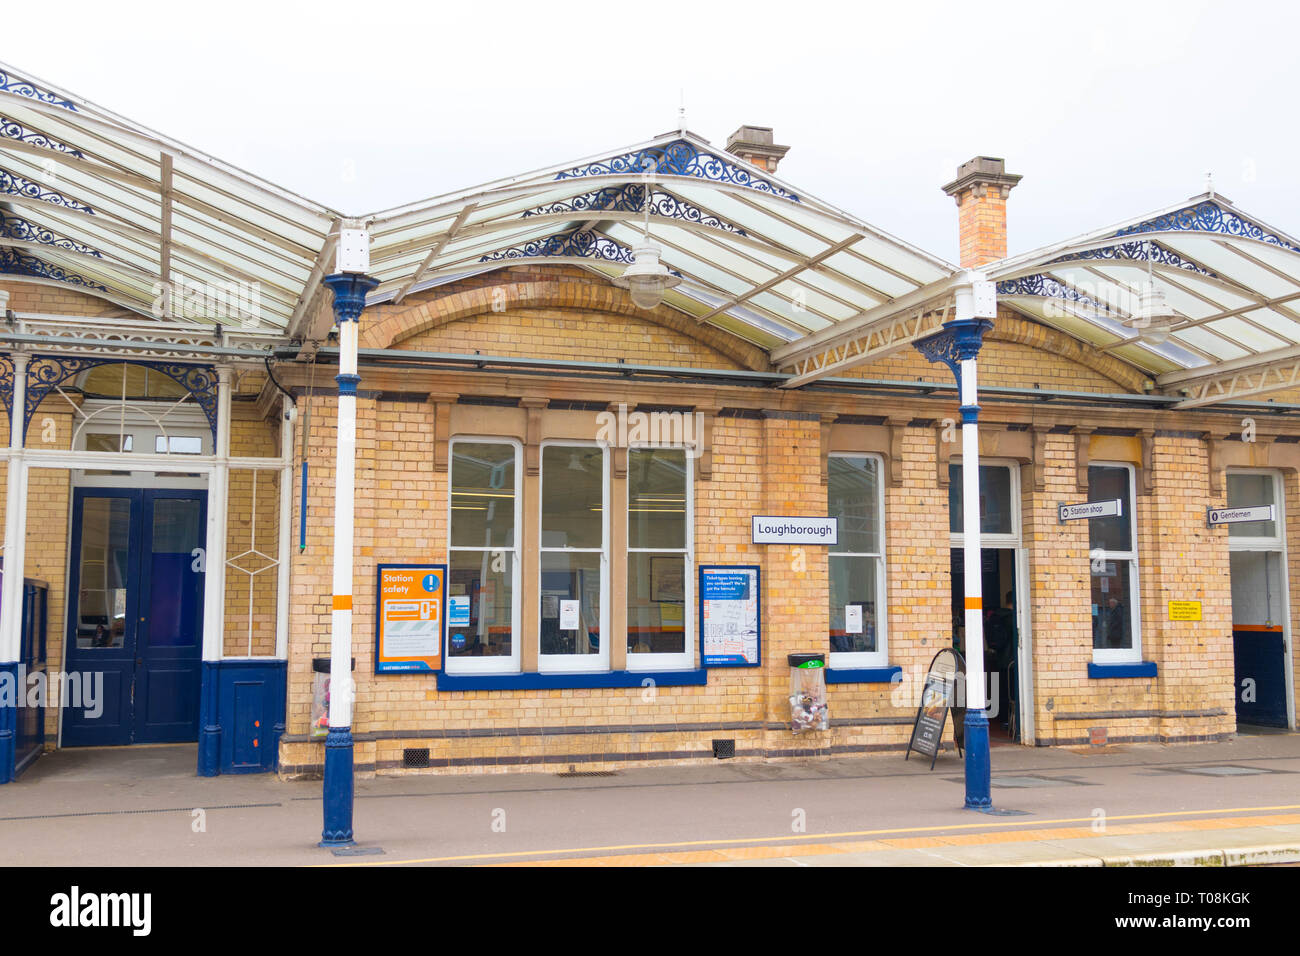 Loughborough train station near Nottingham and Leicester - Stock Image